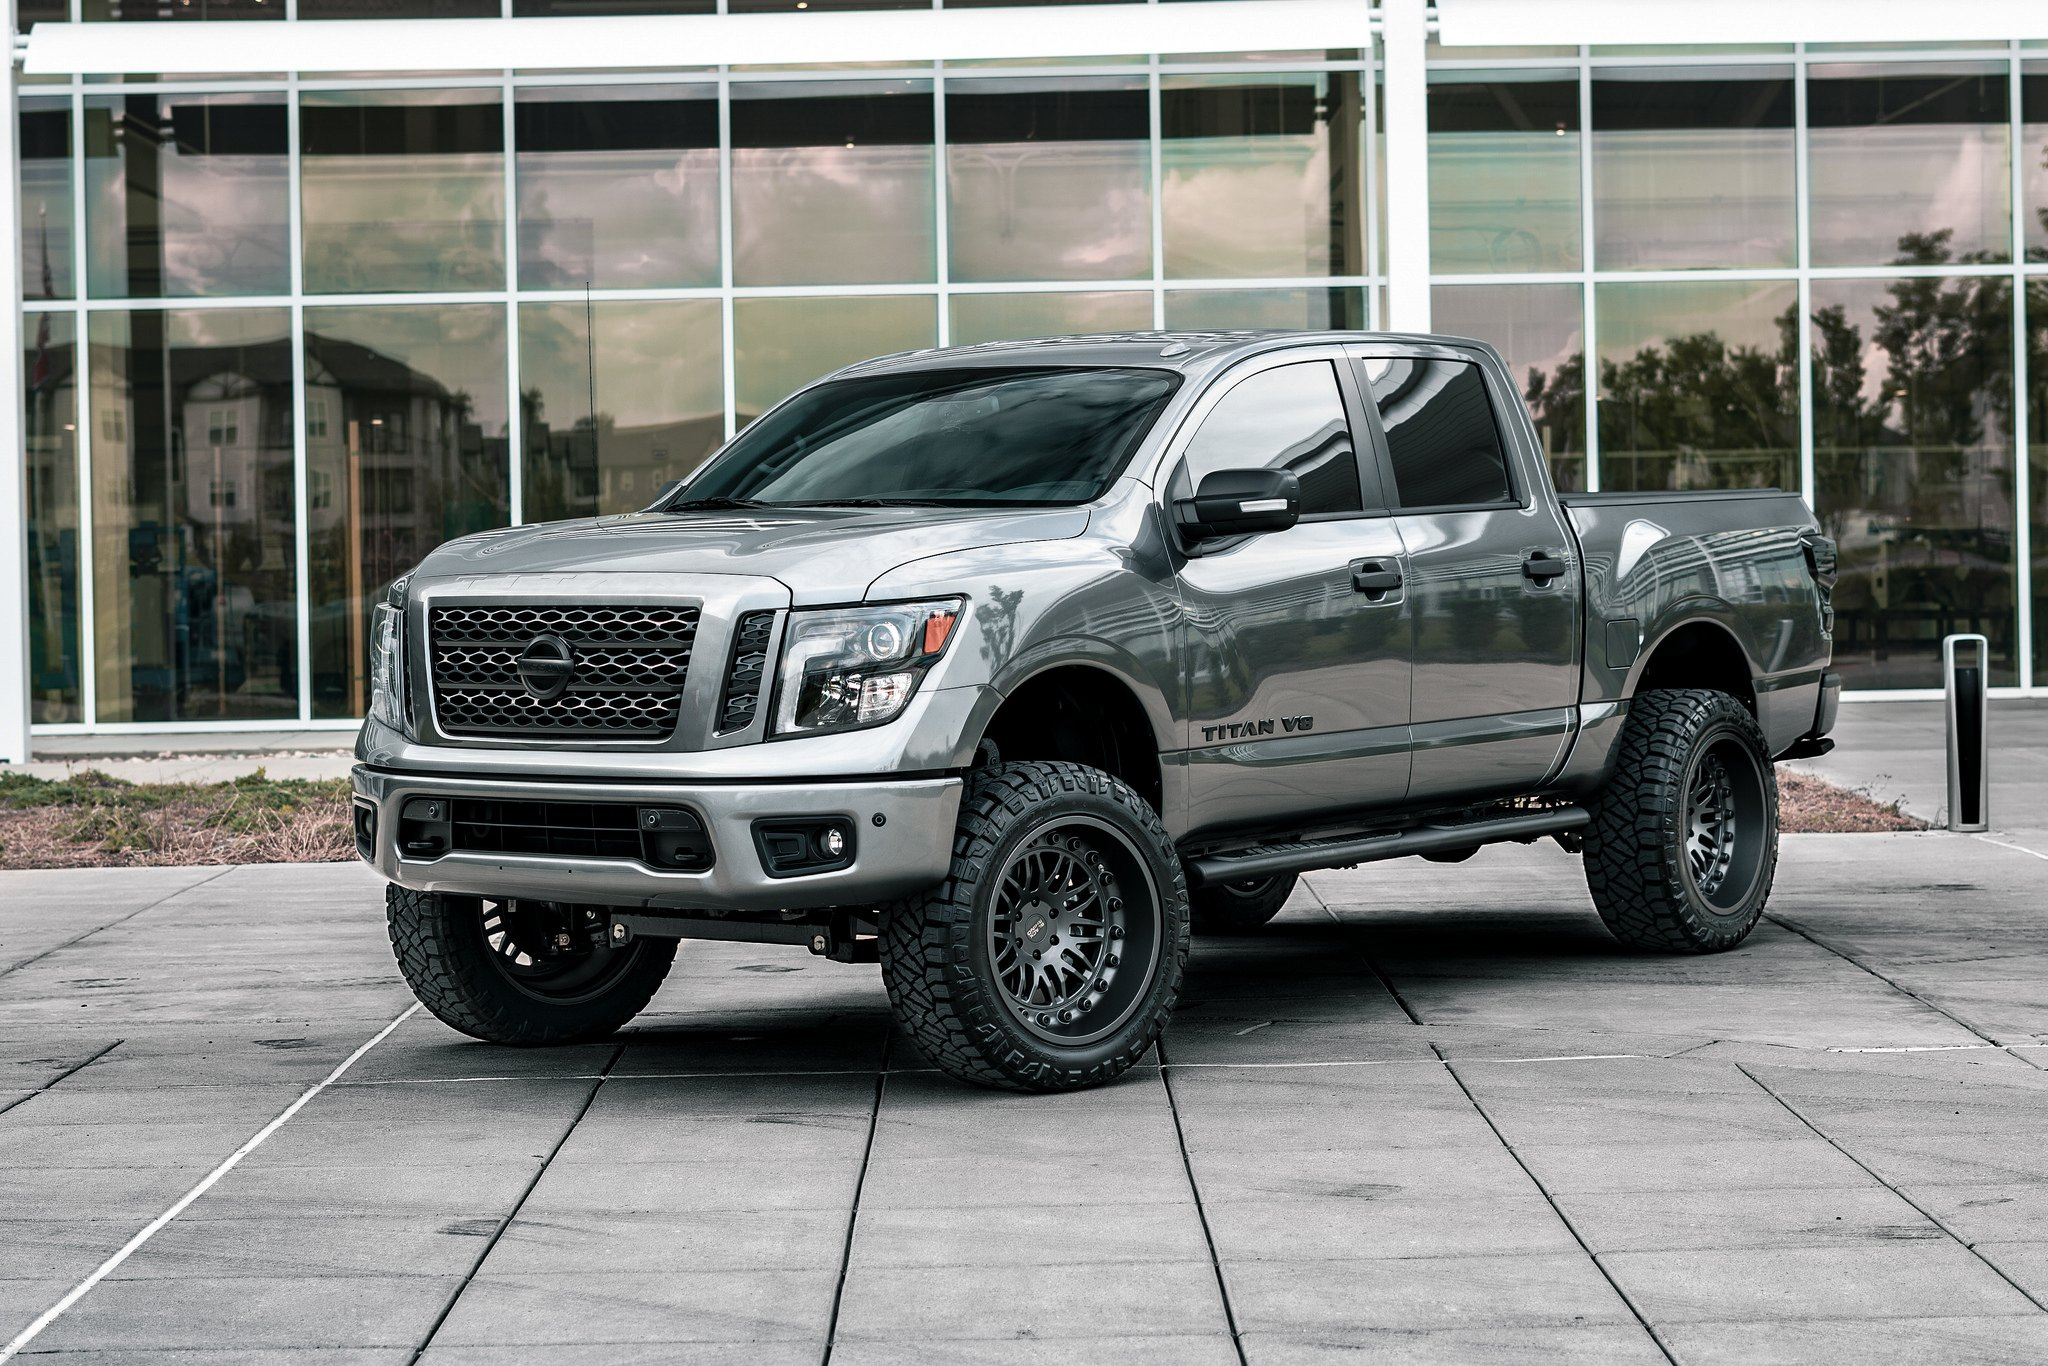 Custom 2019 Nissan Titan Images Mods Photos Upgrades Carid Com Gallery